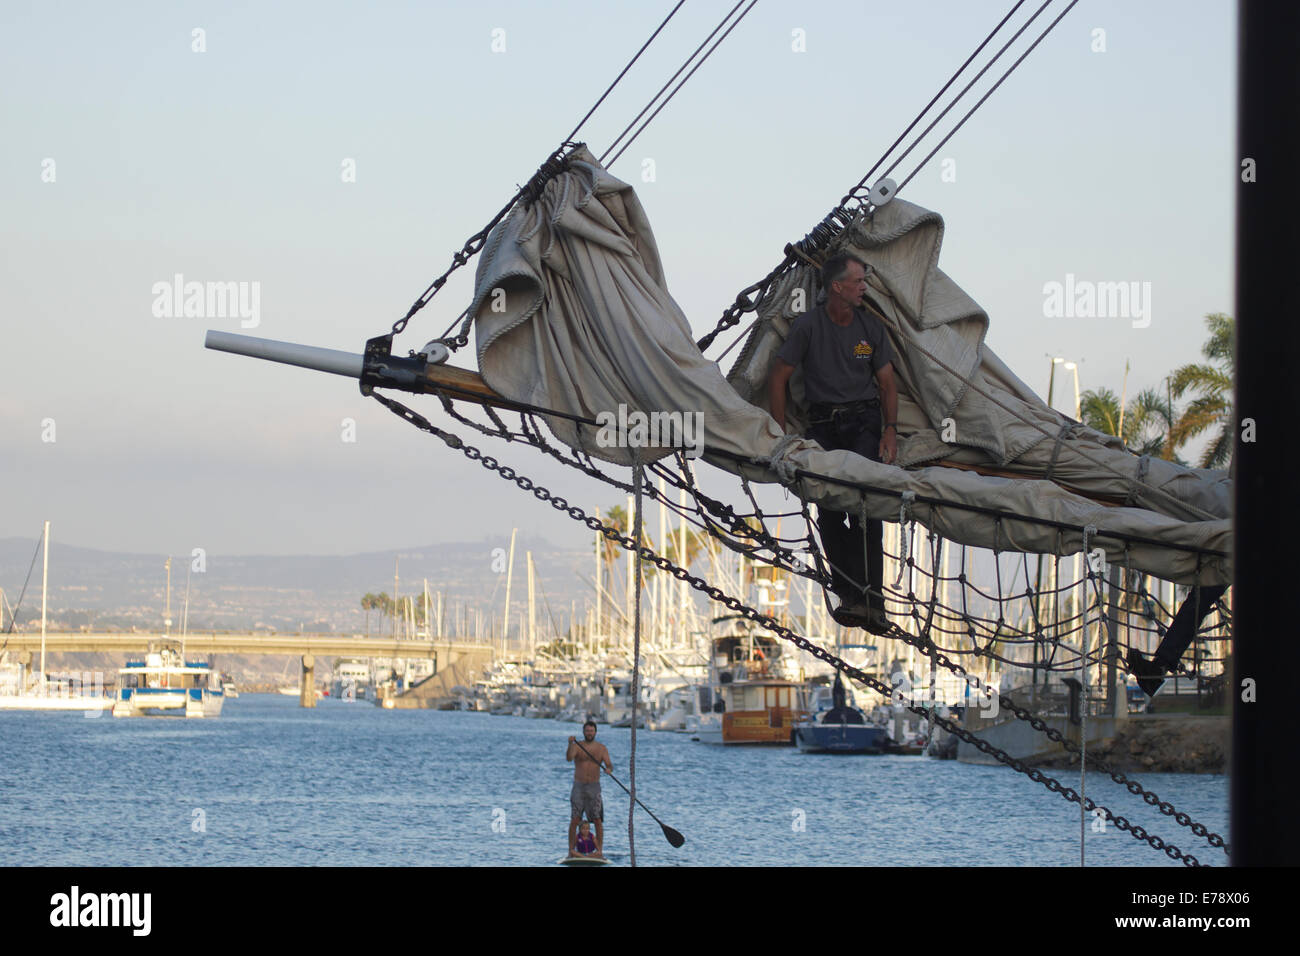 30th Annual Toshiba Tall Ships Festival in Dana Point Harbor Southern California Stock Photo